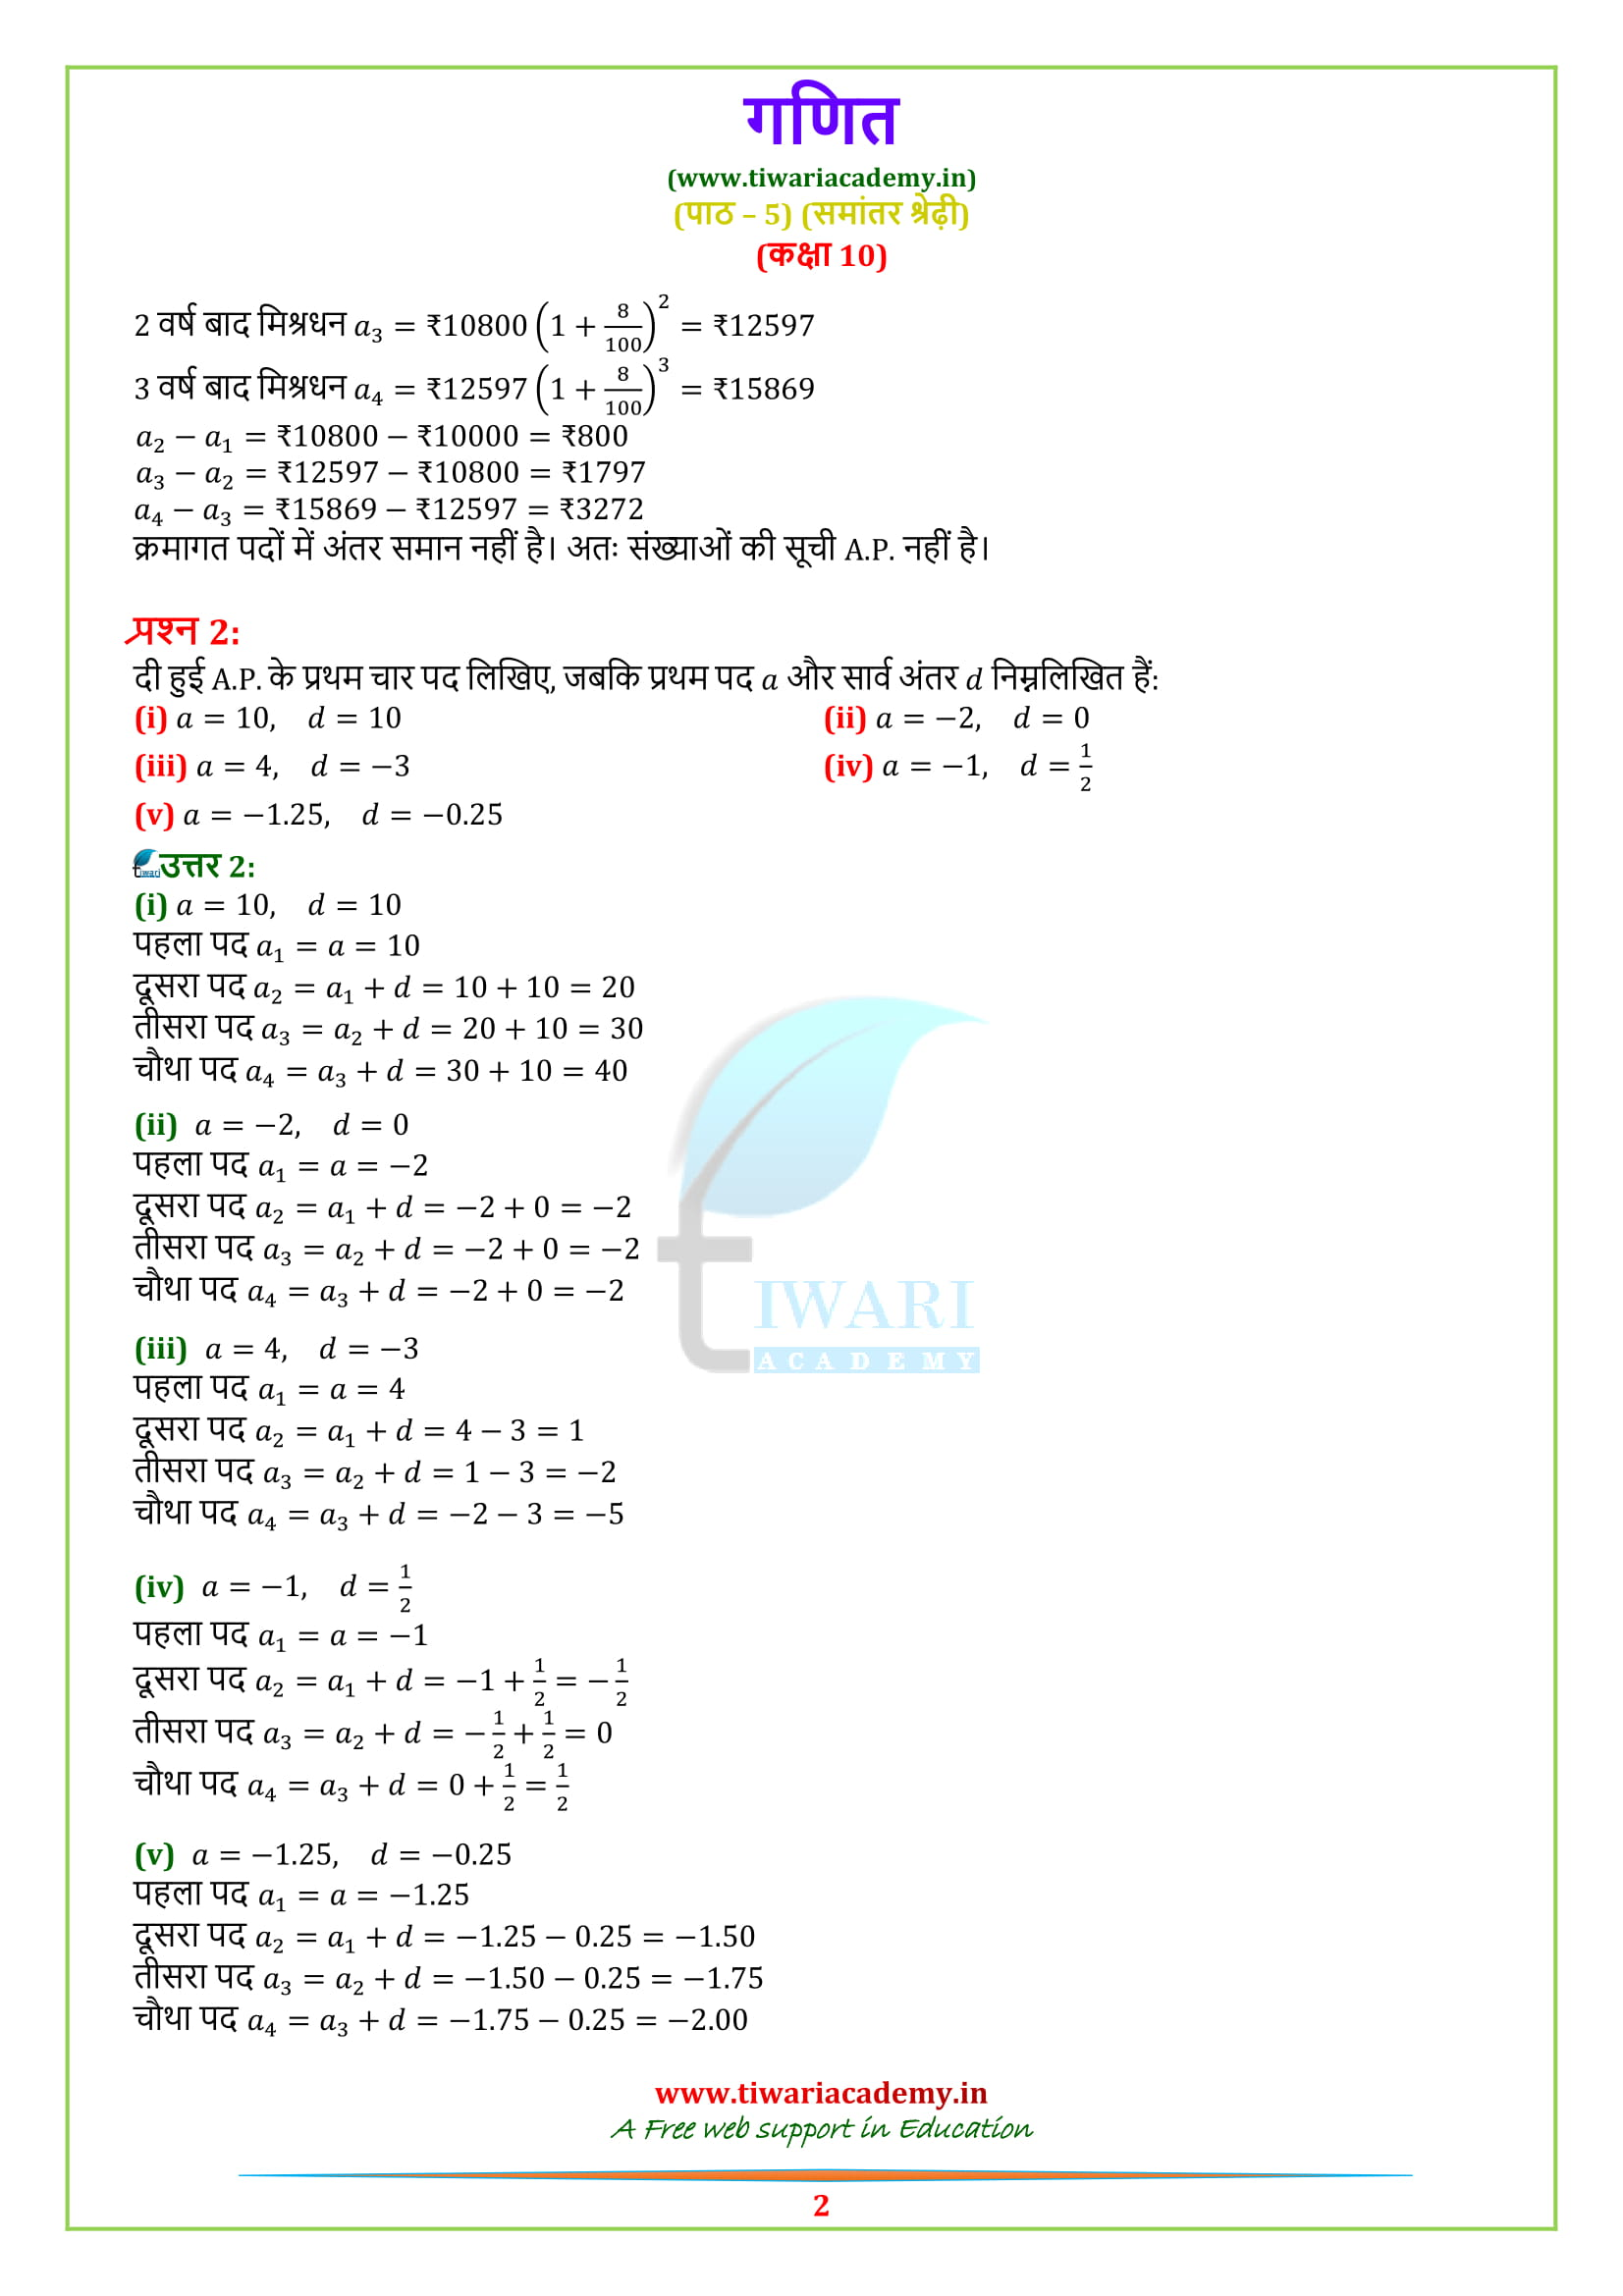 Class 10 Maths Exercise 5.1 Solutions in Hindi medium